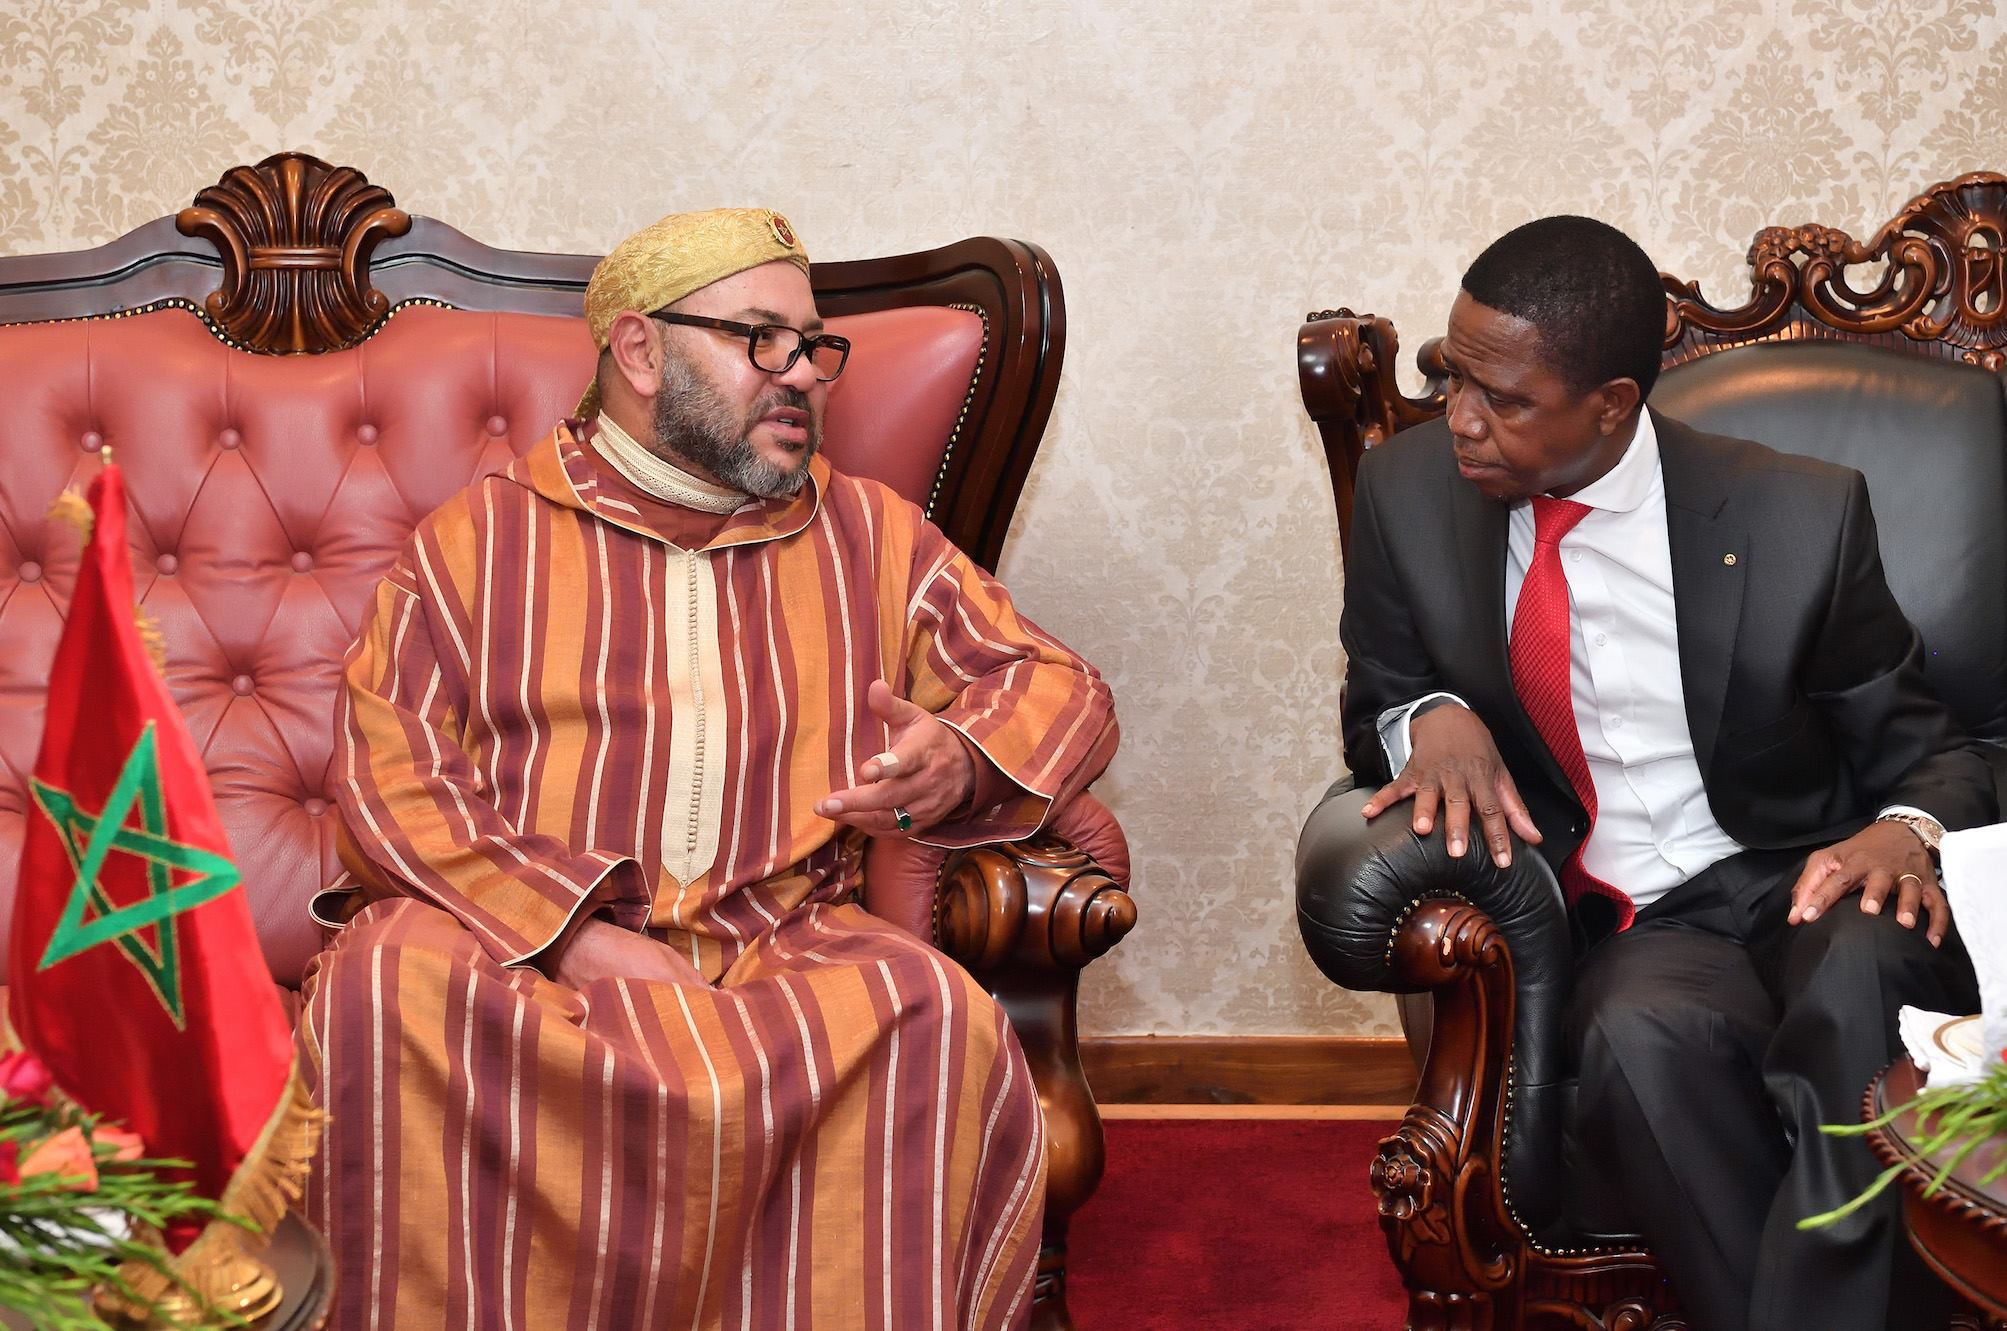 Lungu with king of Morocco in Feb 2017